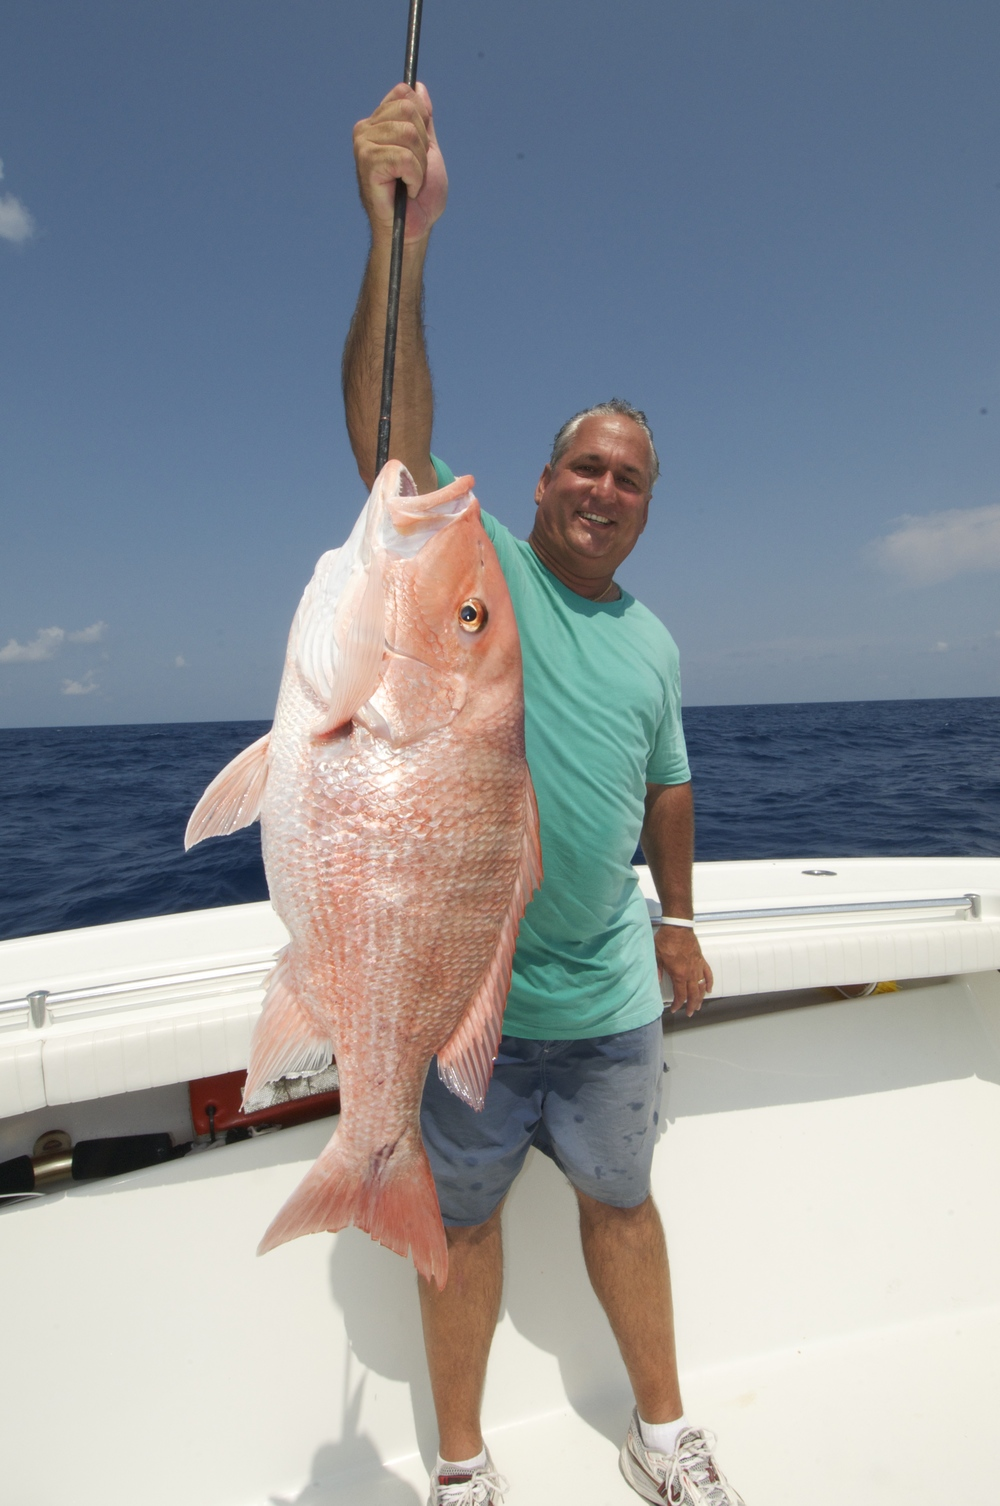 Members of Florida's FWC will be discussing a possible Gulf red snapper season at its Jacksonville meeting, Feb. 4-5.